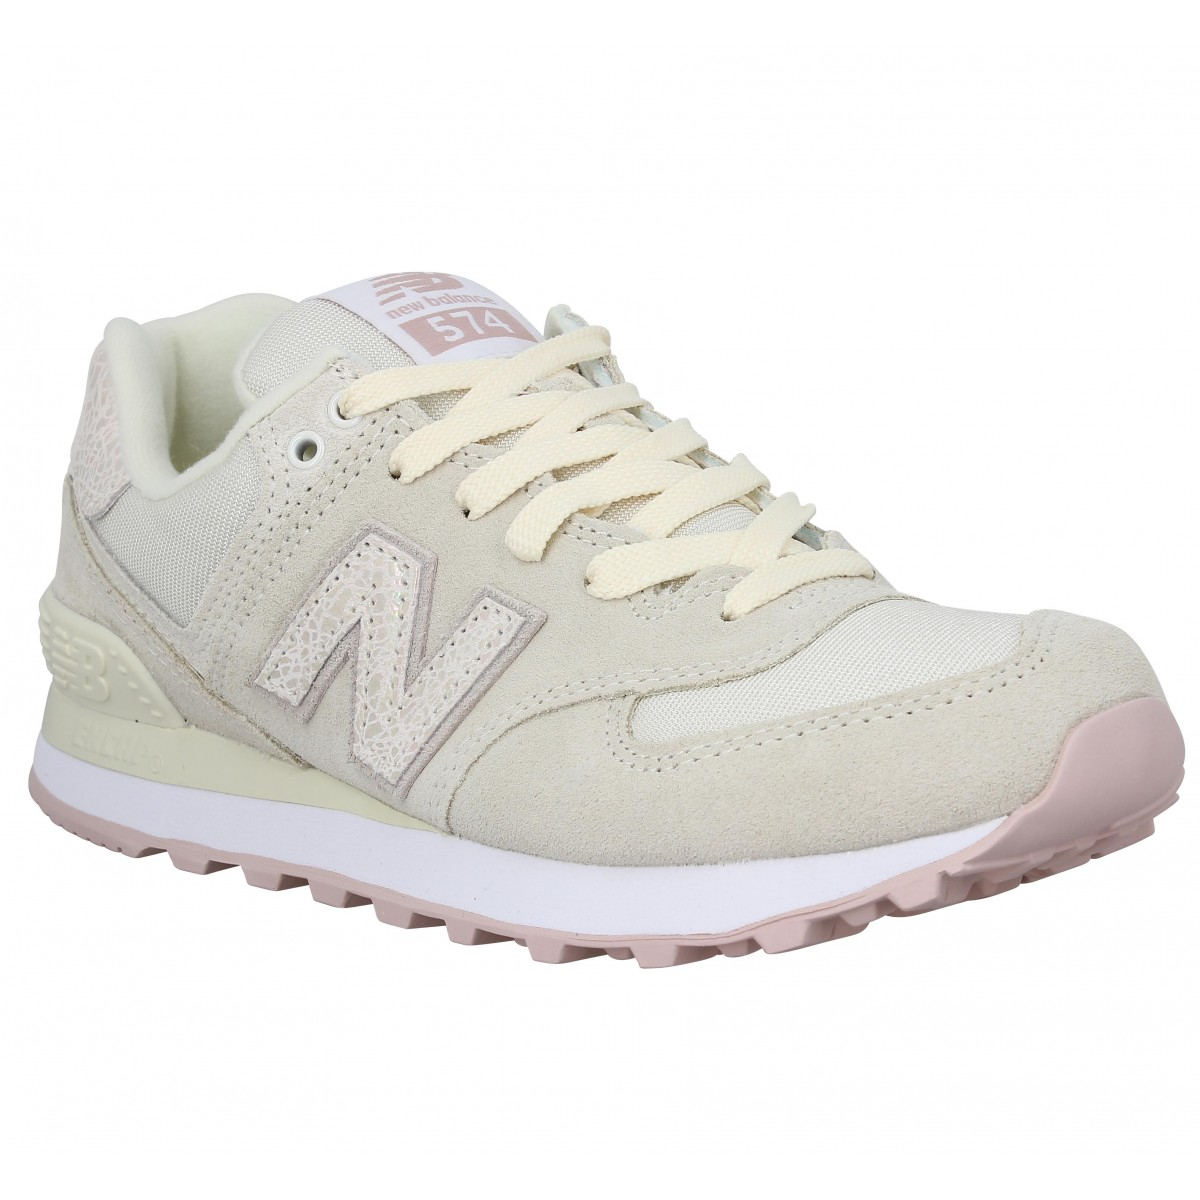 Baskets NEW BALANCE 574 velours toile Femme Off White